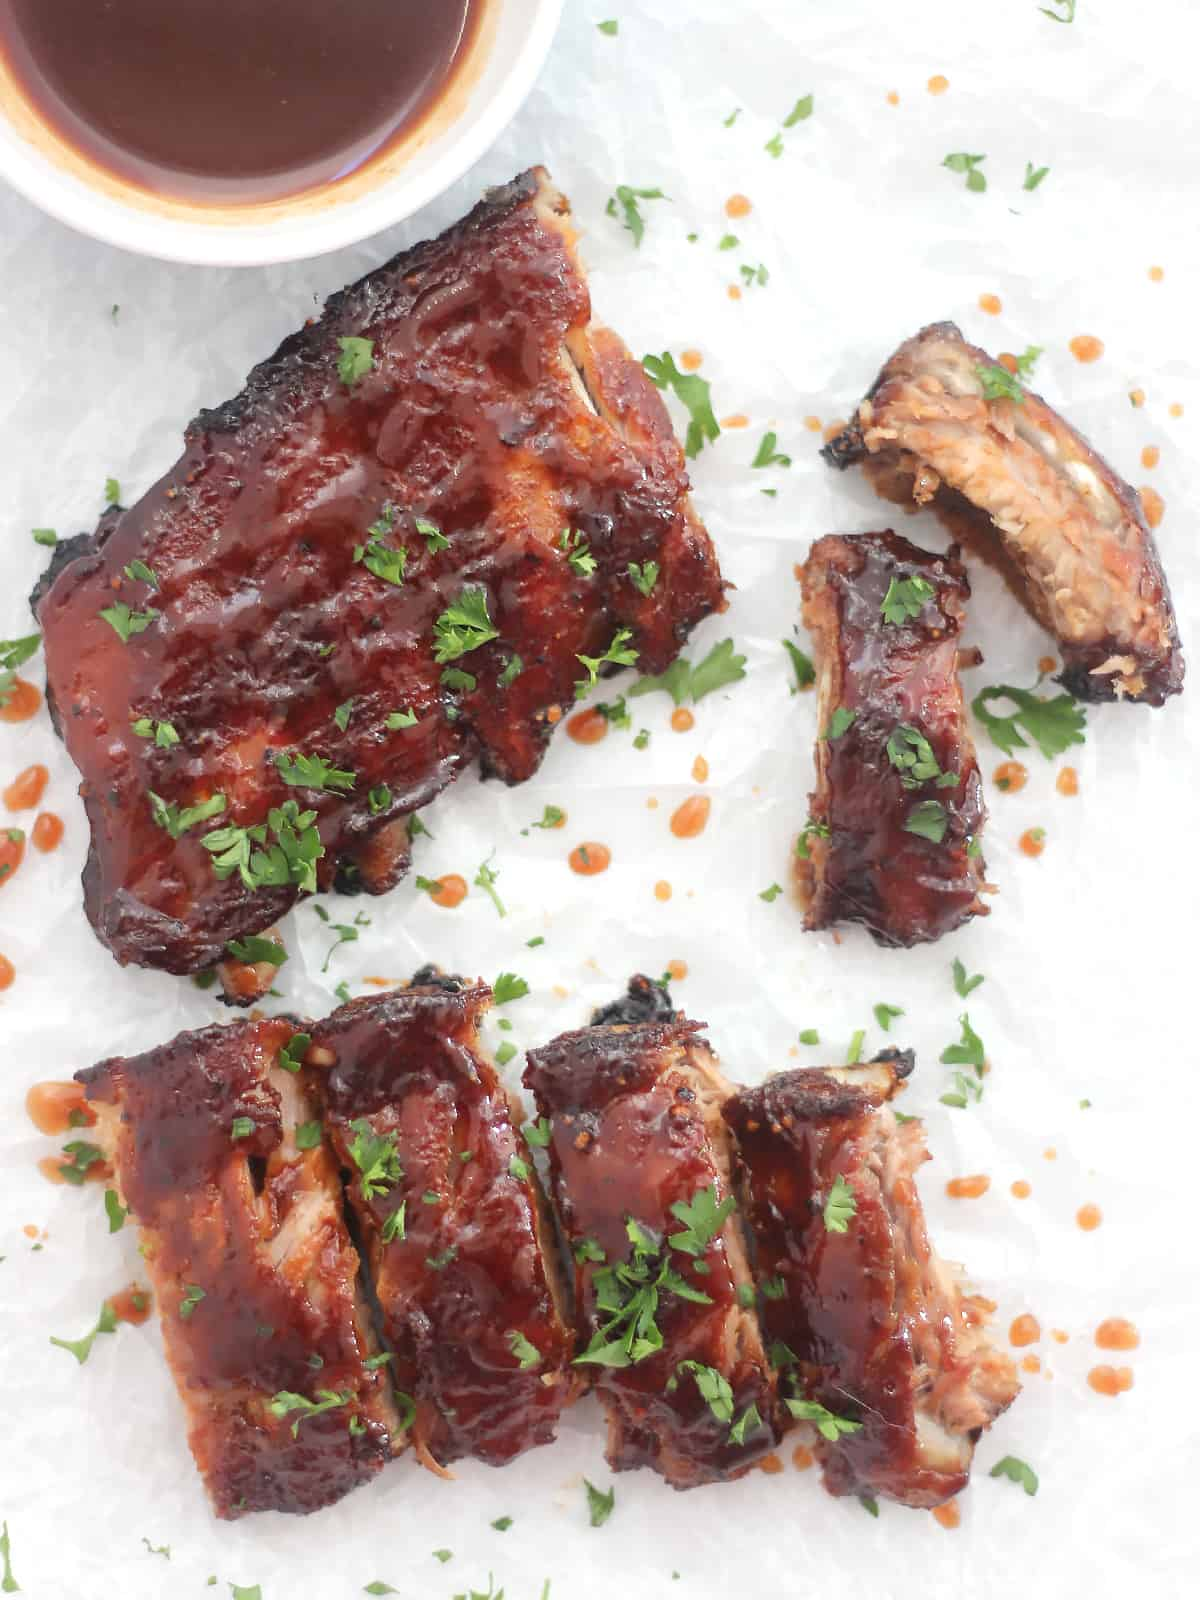 Overhead shot oven maple bbq oven roasted ribs drizzled with sauce.